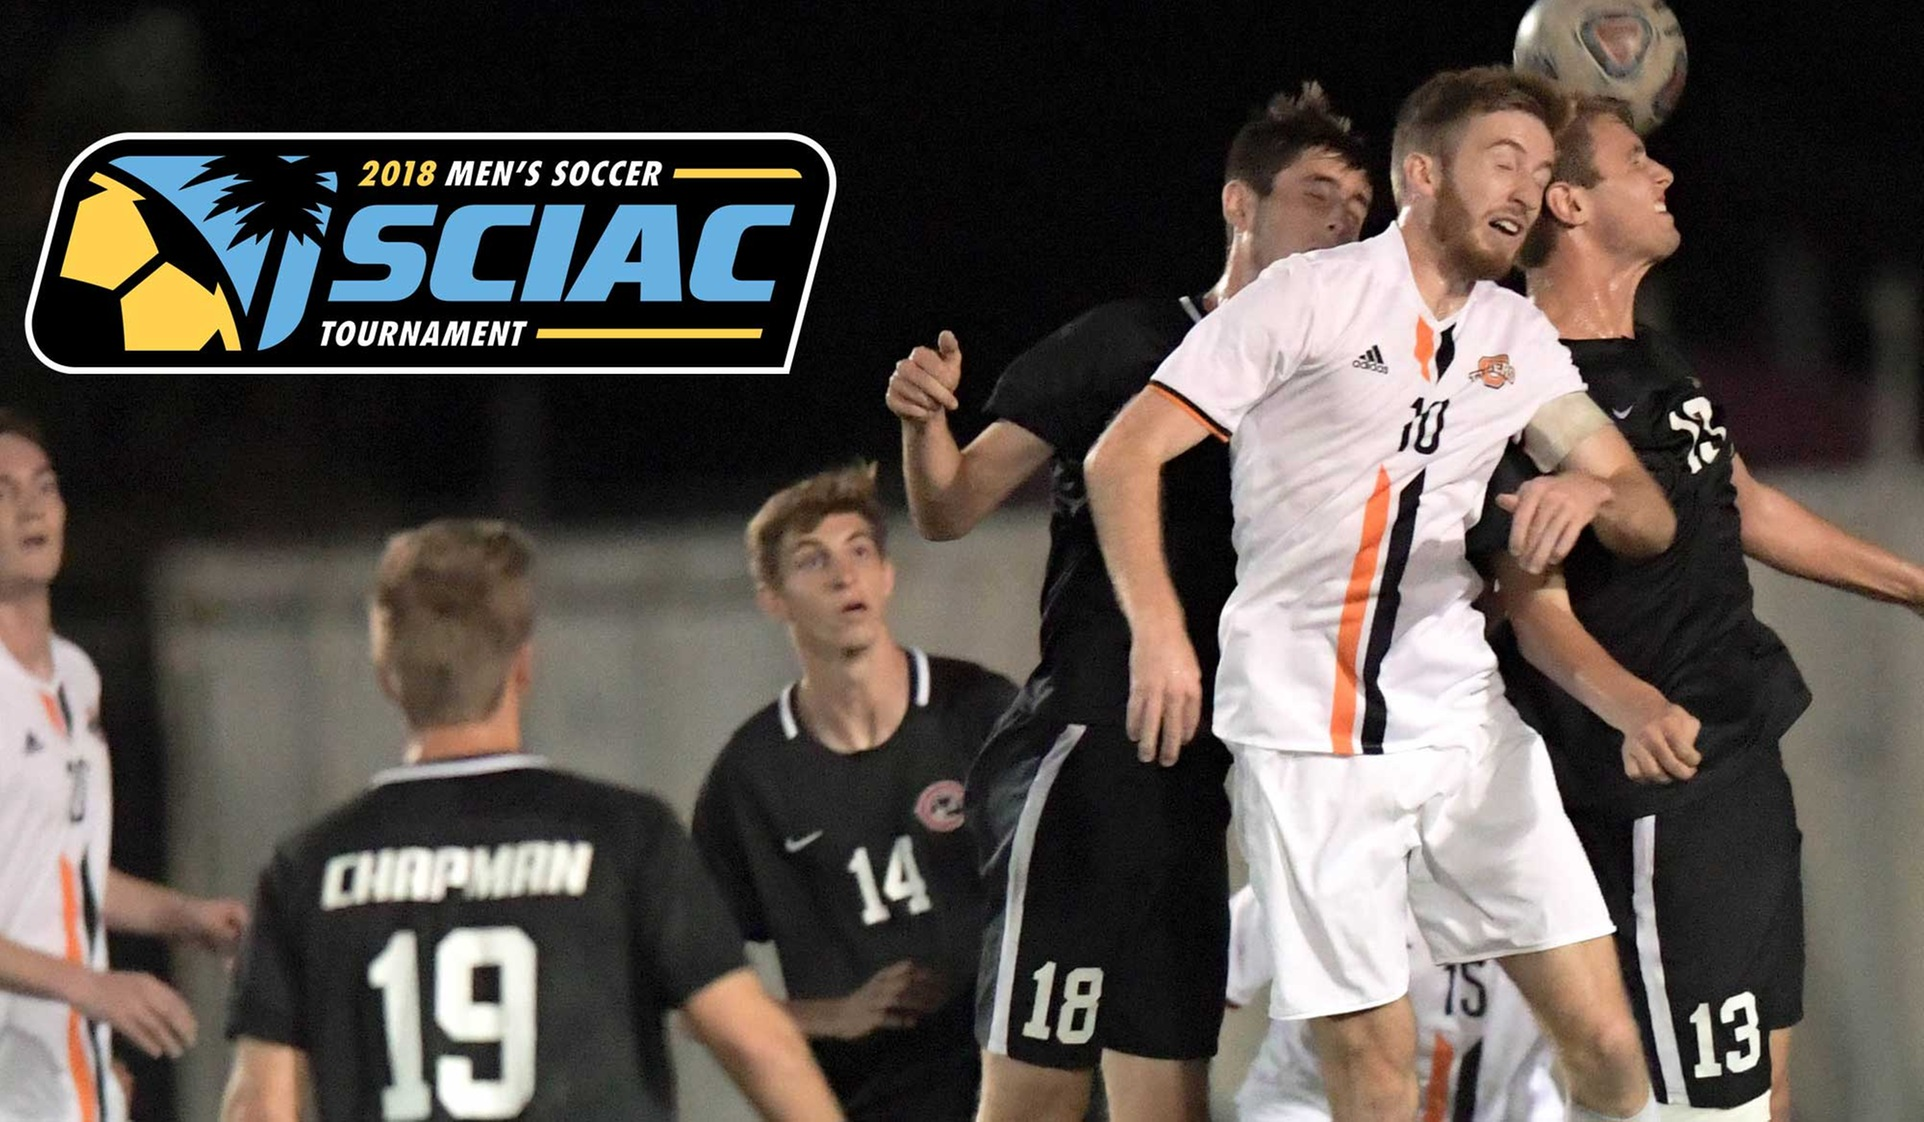 Chapman Edges Oxy in SCIAC Championship